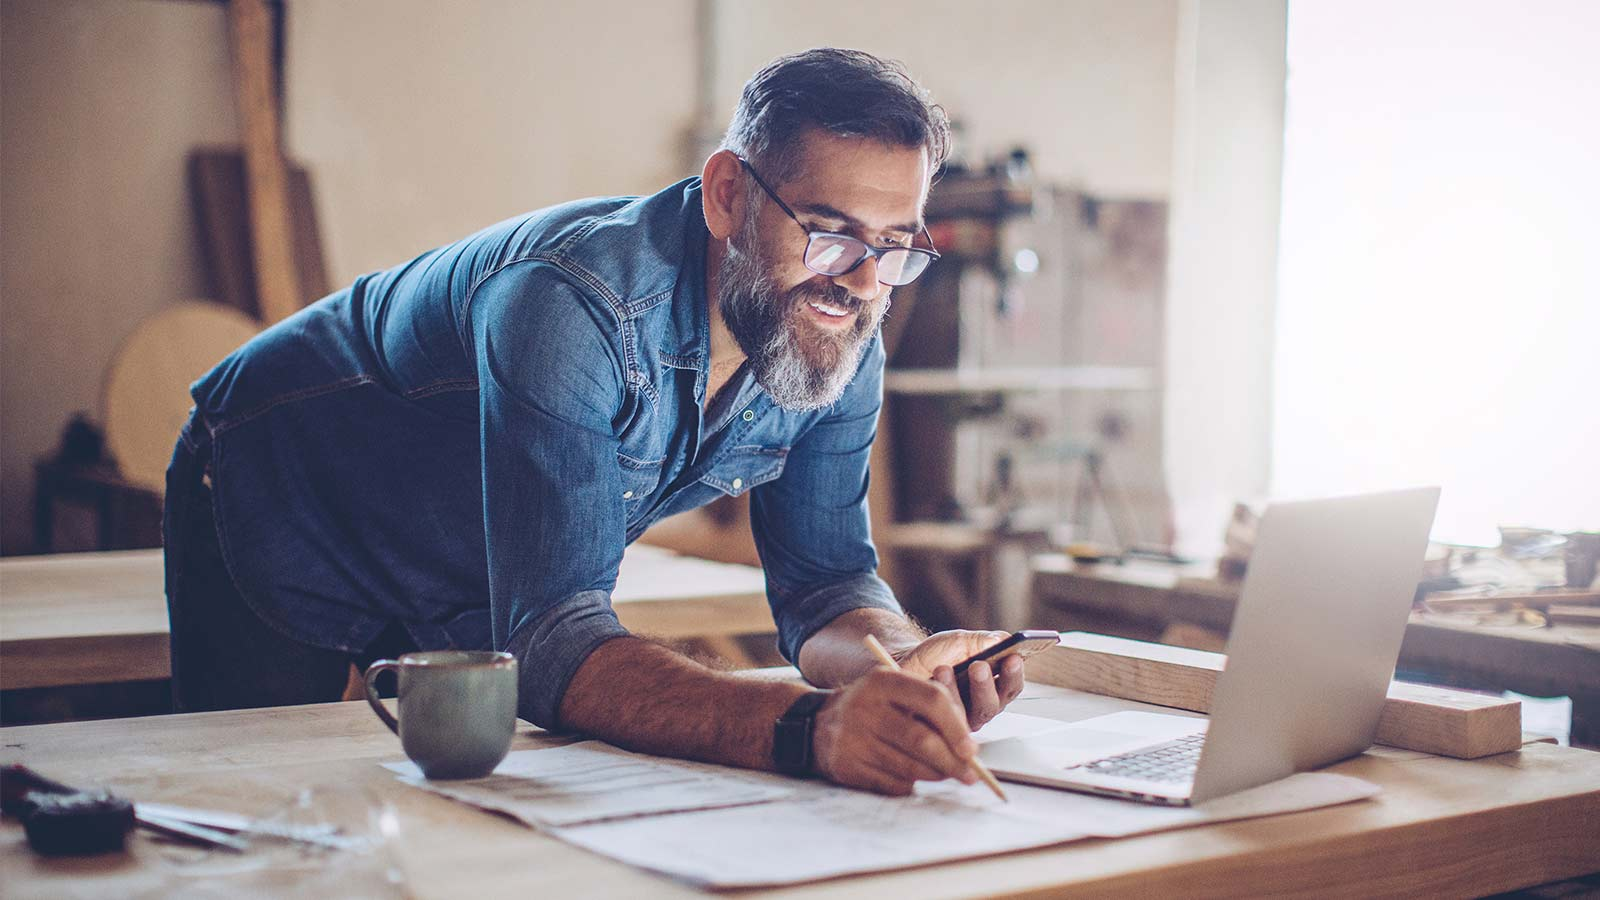 Smiling, casual man with beard, working with pencil, paper and laptop